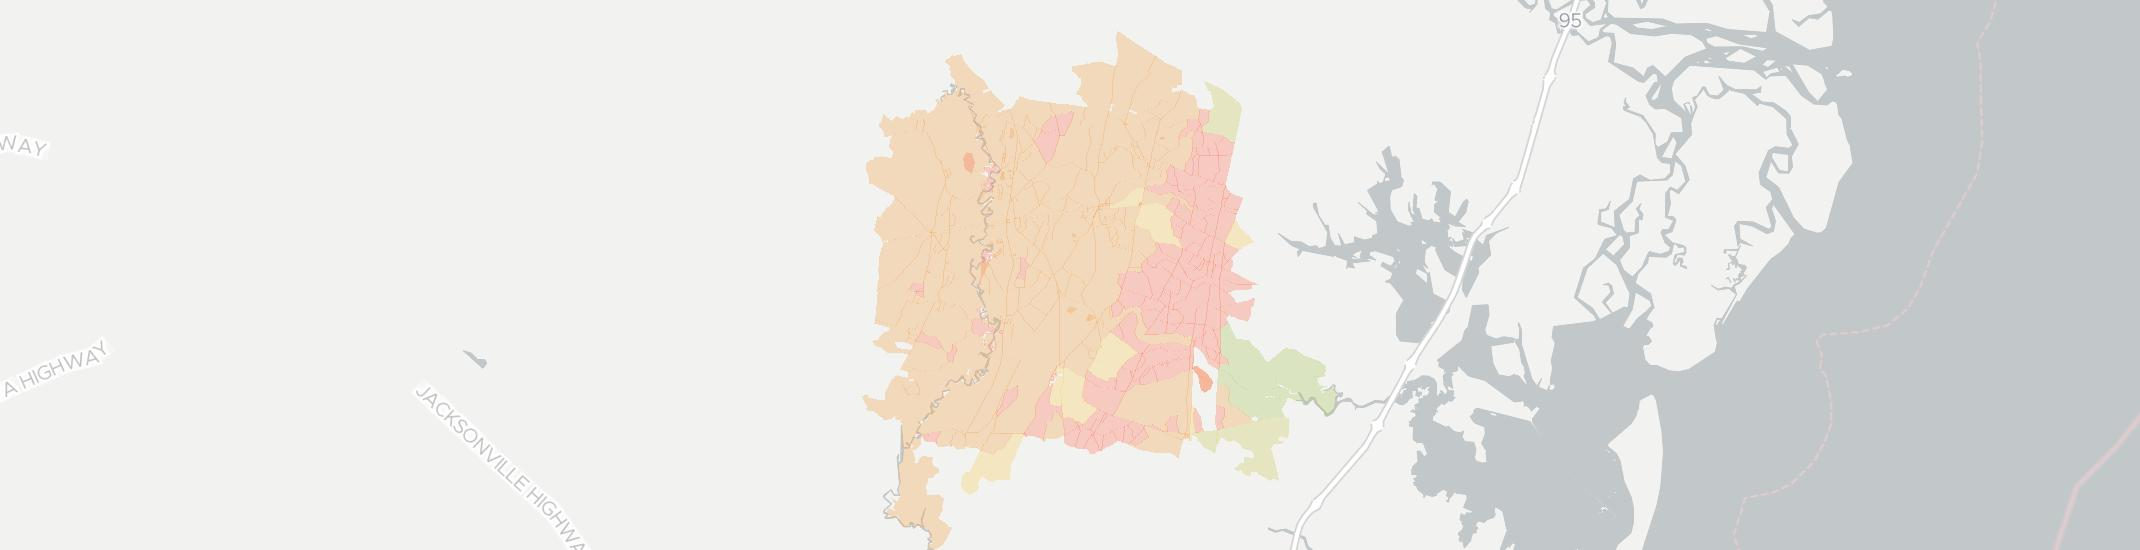 Waynesville Internet Competition Map. Click for interactive map.